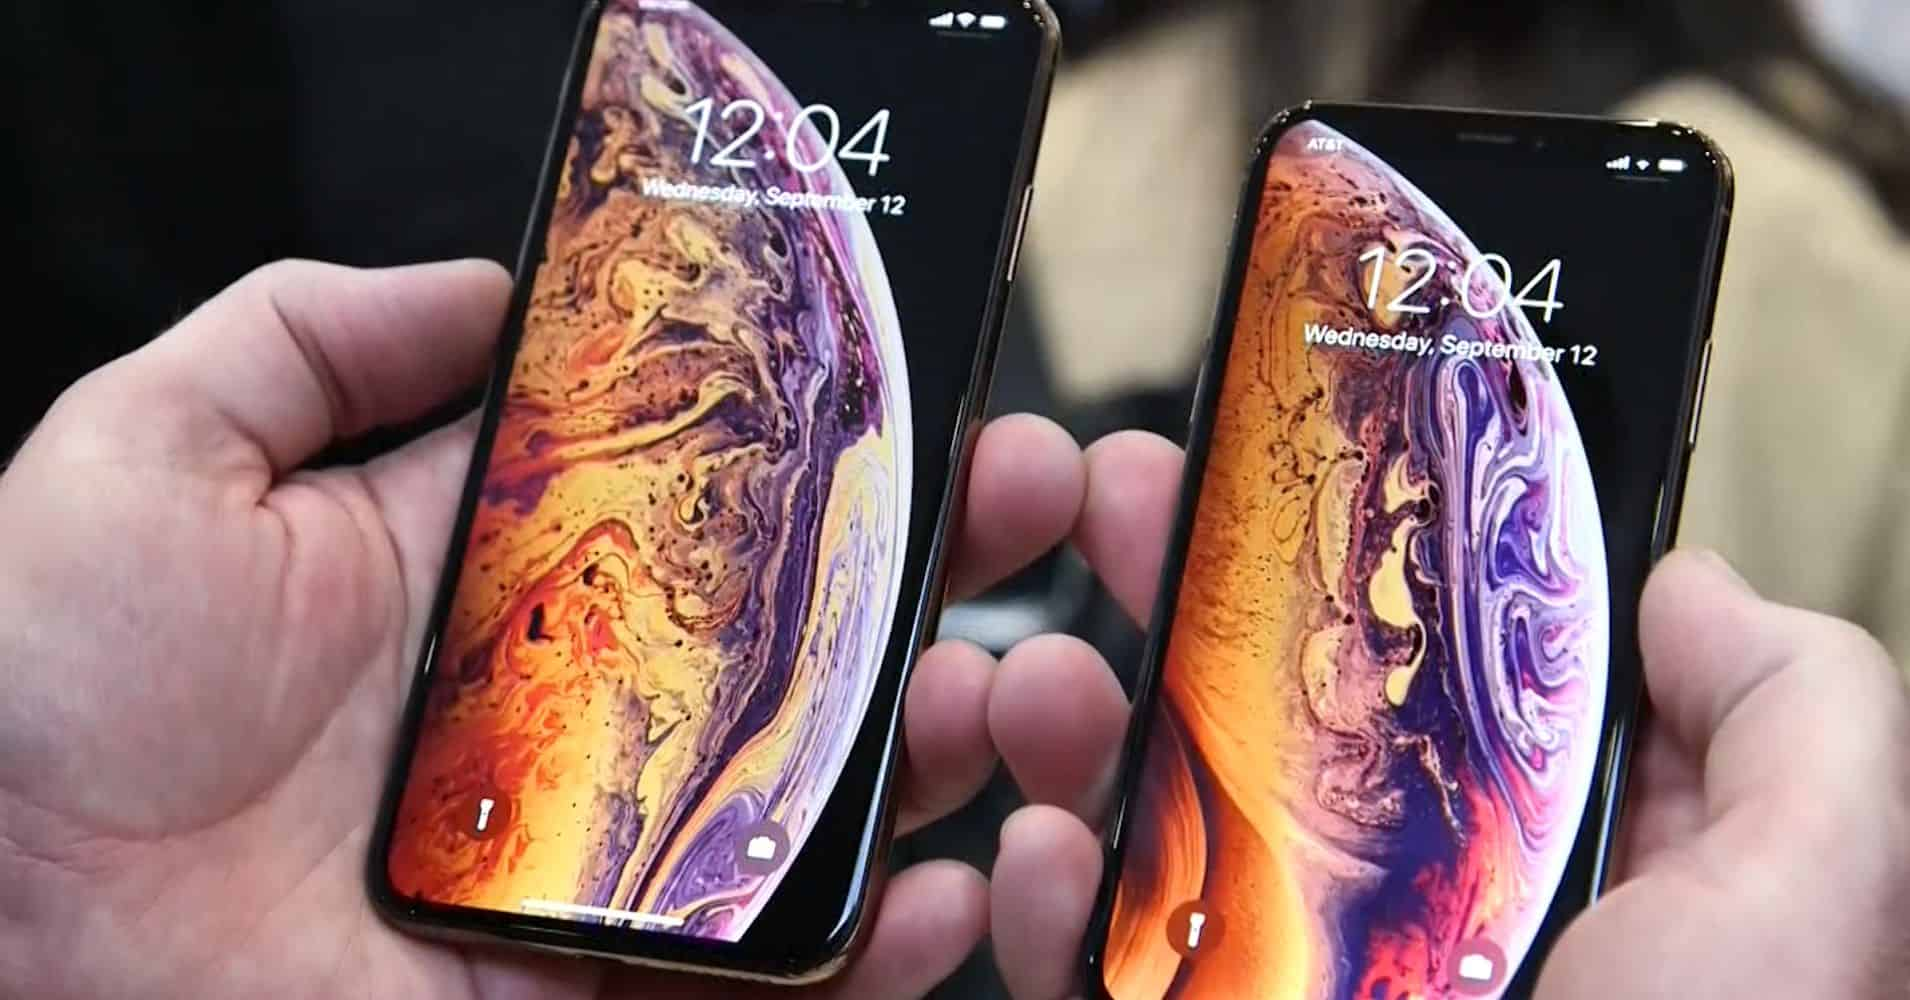 Take home a renewed iPhone XS Max and save $450 along the way